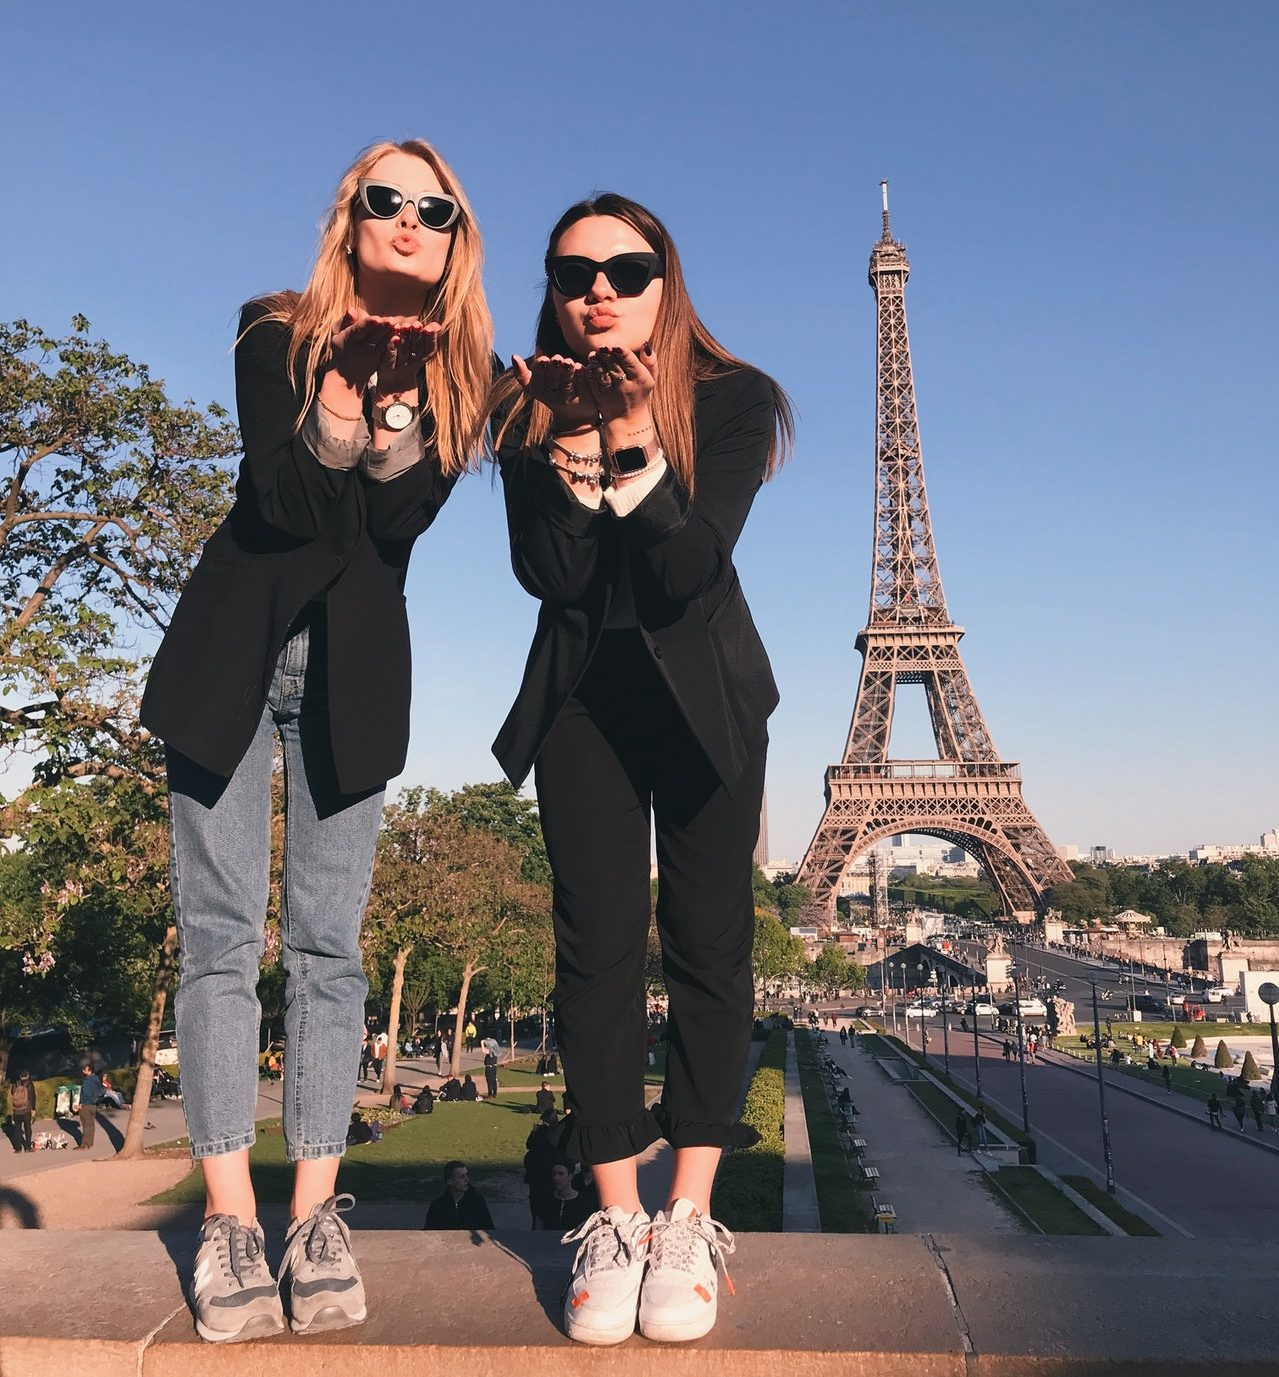 Women blowing kissed in front of the Eiffel Tower for a photo